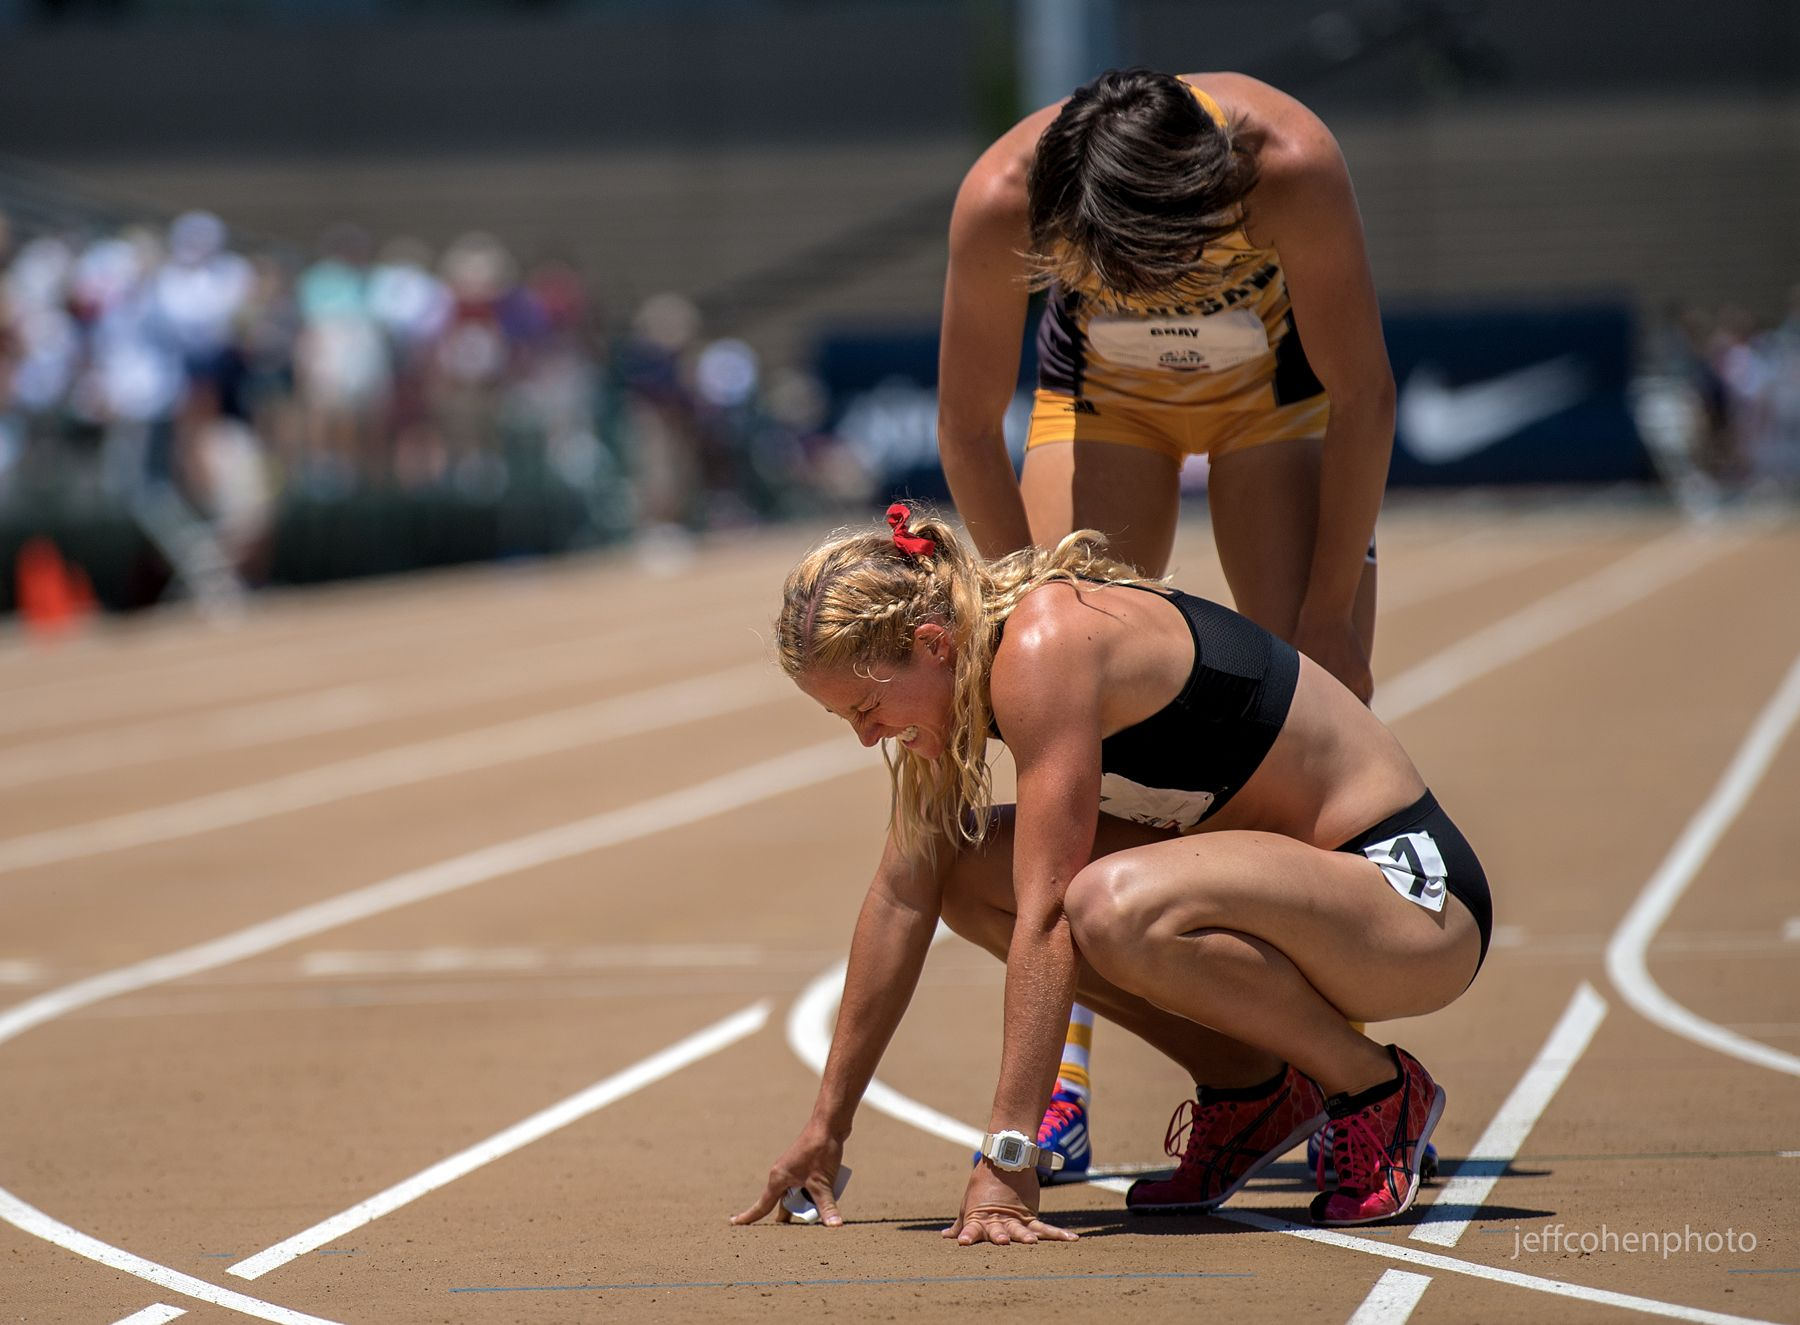 2017-usatf-outdoor-champs-day-4-reaser-gray-hept--jeff-cohen-photo--2324-web.jpg